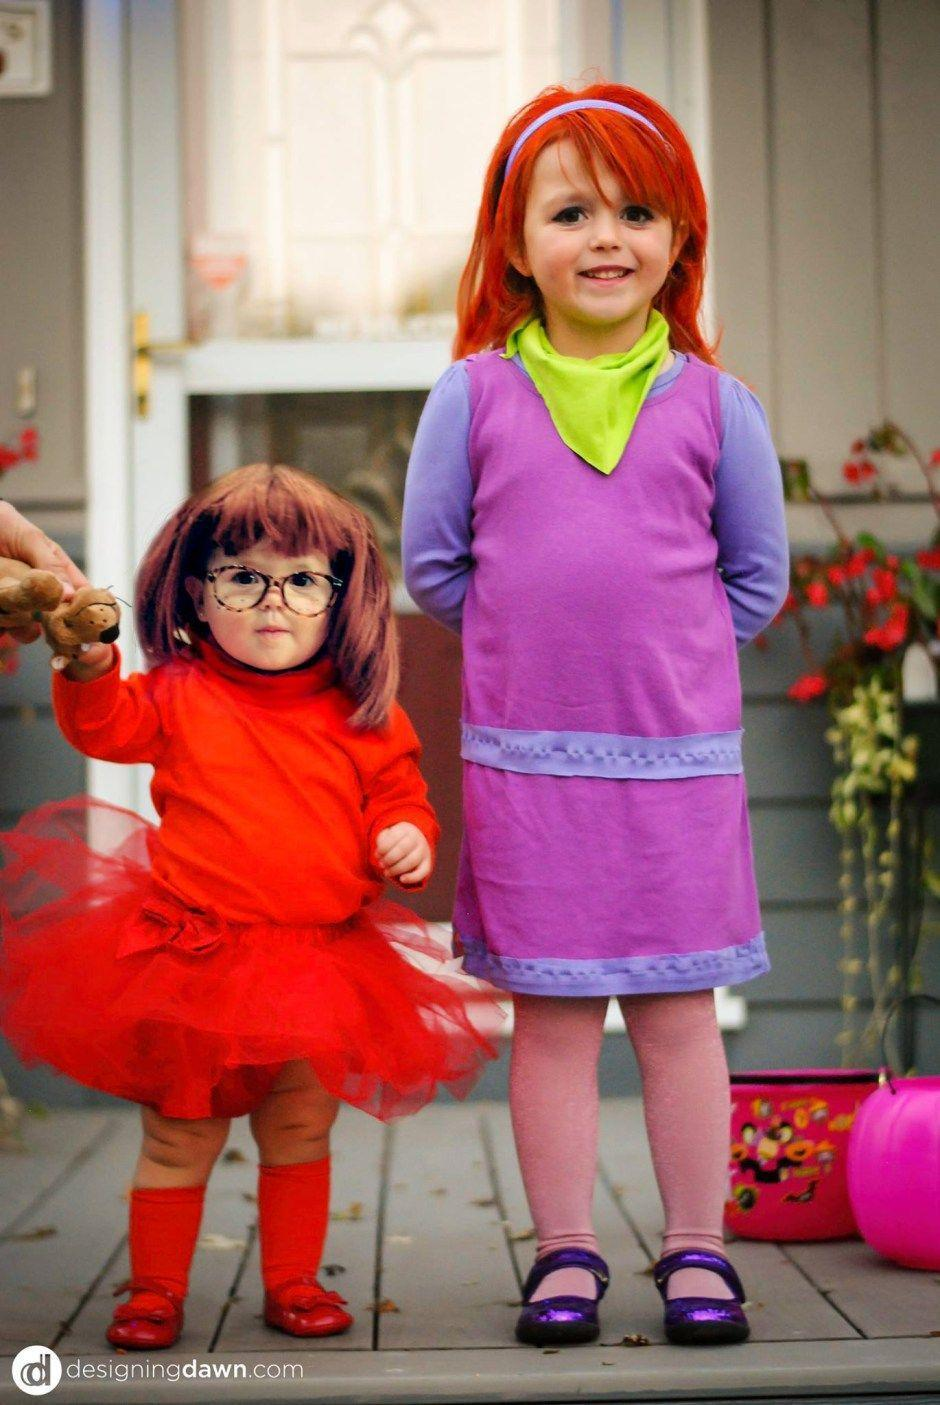 """<p>Any character from the '70s cartoon would make a classic Halloween costume—Mystery Machine not included!</p><p><strong>Get the tutorial at <a href=""""http://designingdawn.com/happy-halloween-diy-scooby-doo-gang-costumes/"""" rel=""""nofollow noopener"""" target=""""_blank"""" data-ylk=""""slk:Designing Dawn"""" class=""""link rapid-noclick-resp"""">Designing Dawn</a>.</strong></p><p><a class=""""link rapid-noclick-resp"""" href=""""https://www.amazon.com/Coxlures-Girls-Ballet-Tutu-Red/dp/B002GZPTTO?tag=syn-yahoo-20&ascsubtag=%5Bartid%7C10050.g.22500148%5Bsrc%7Cyahoo-us"""" rel=""""nofollow noopener"""" target=""""_blank"""" data-ylk=""""slk:SHOP RED TUTU"""">SHOP RED TUTU</a></p>"""